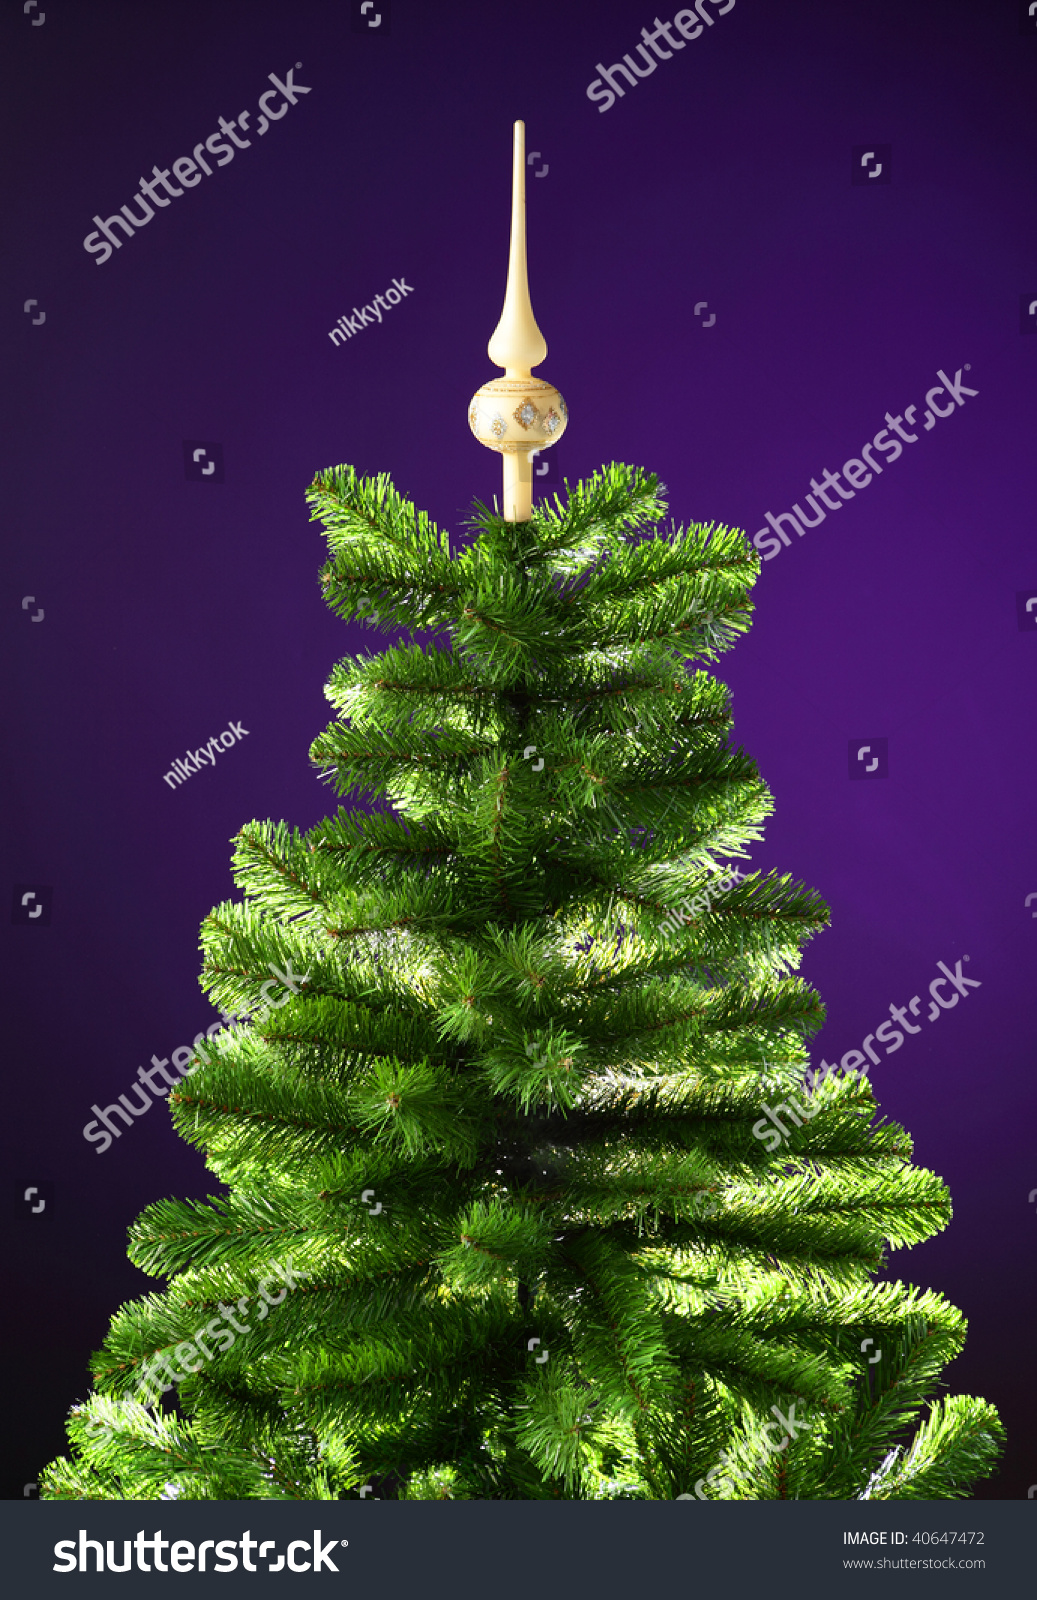 Christmas tree without decorations violet background